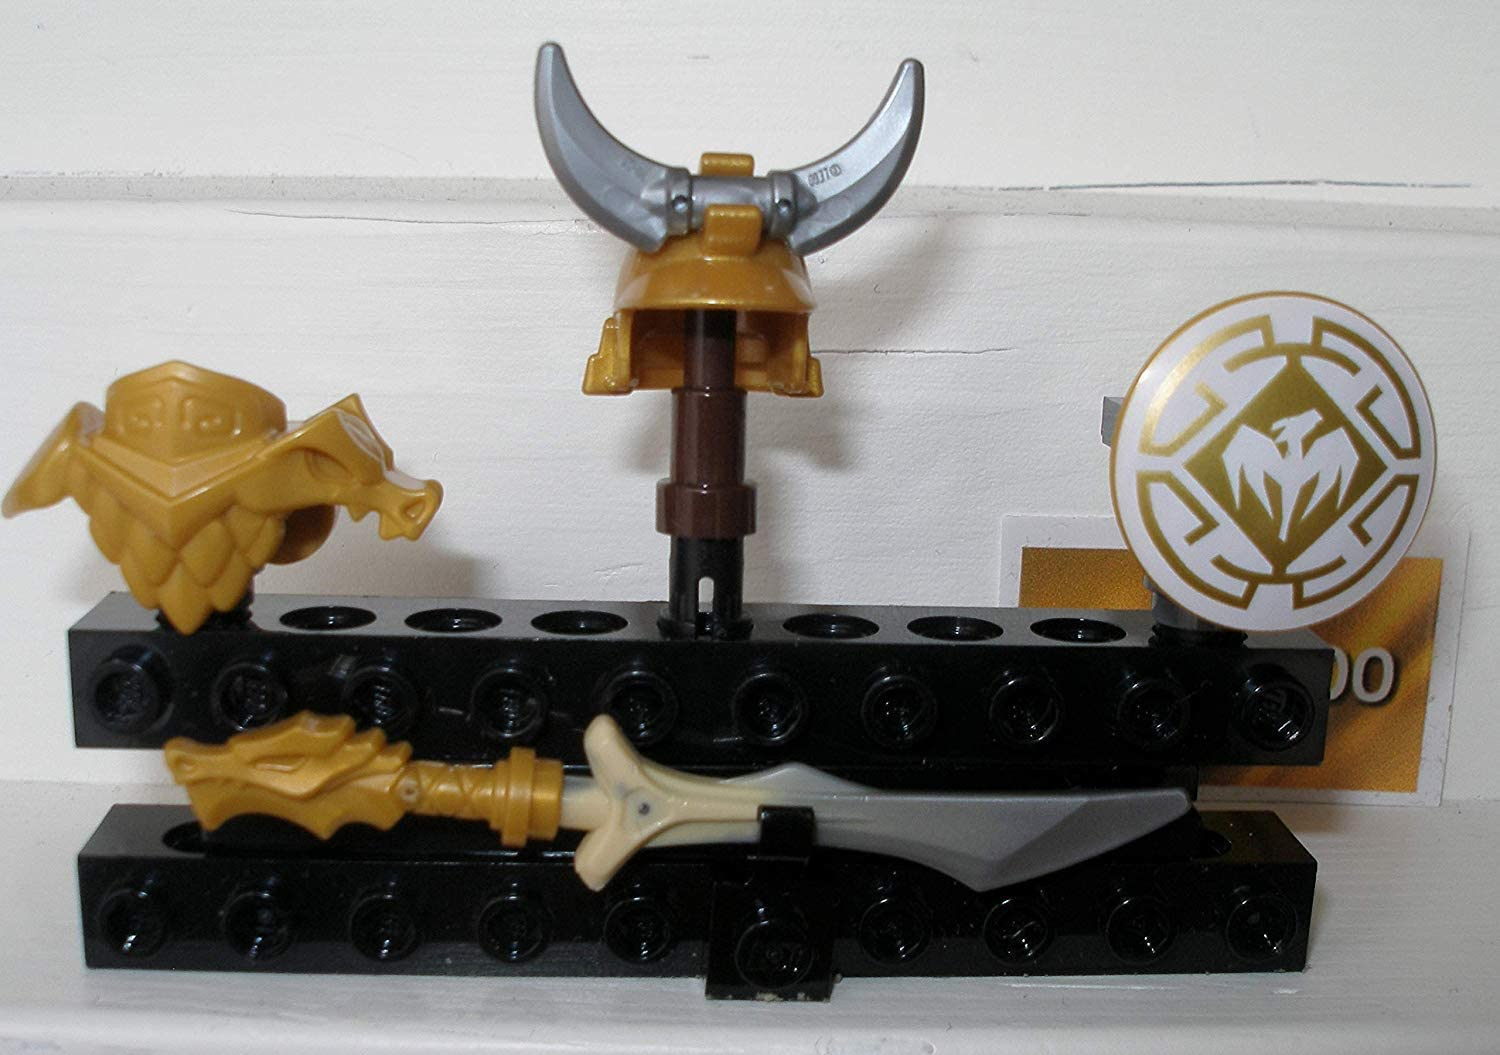 Ninjago 4 Elements Golden Dragon Armor Dragon Master Shield Sword Helmet Chest Armour Weapons Dragon Poster 1 Gold Sticker Amazon De Spielzeug The golden dragon armor( ninjago season 9: ninjago 4 elements golden dragon armor